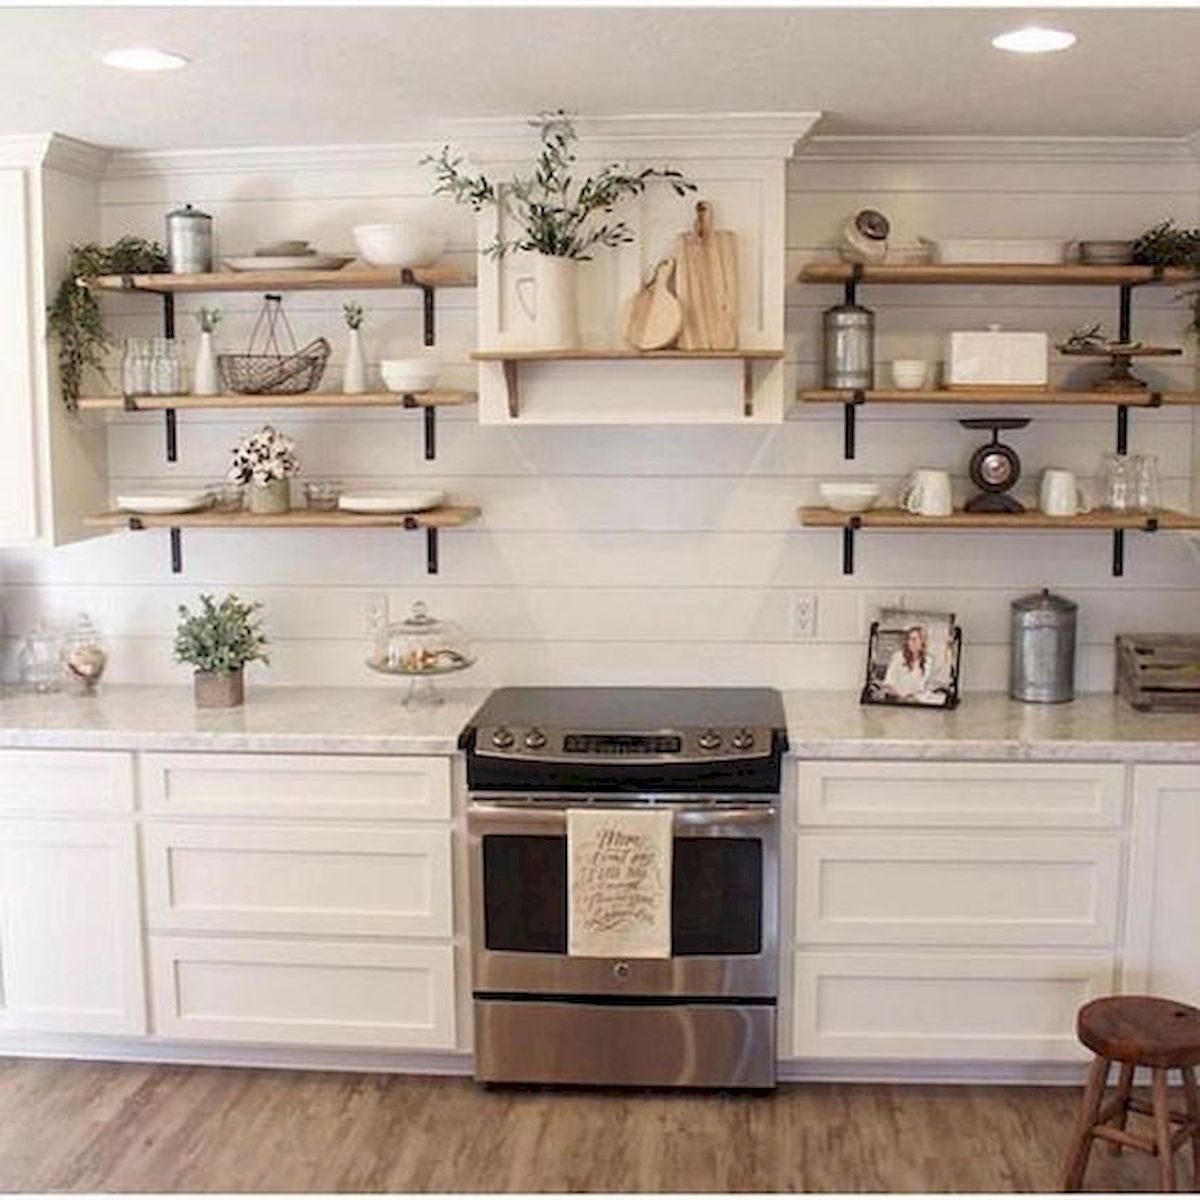 40 Best Modern Farmhouse Kitchen Decor Ideas And Design